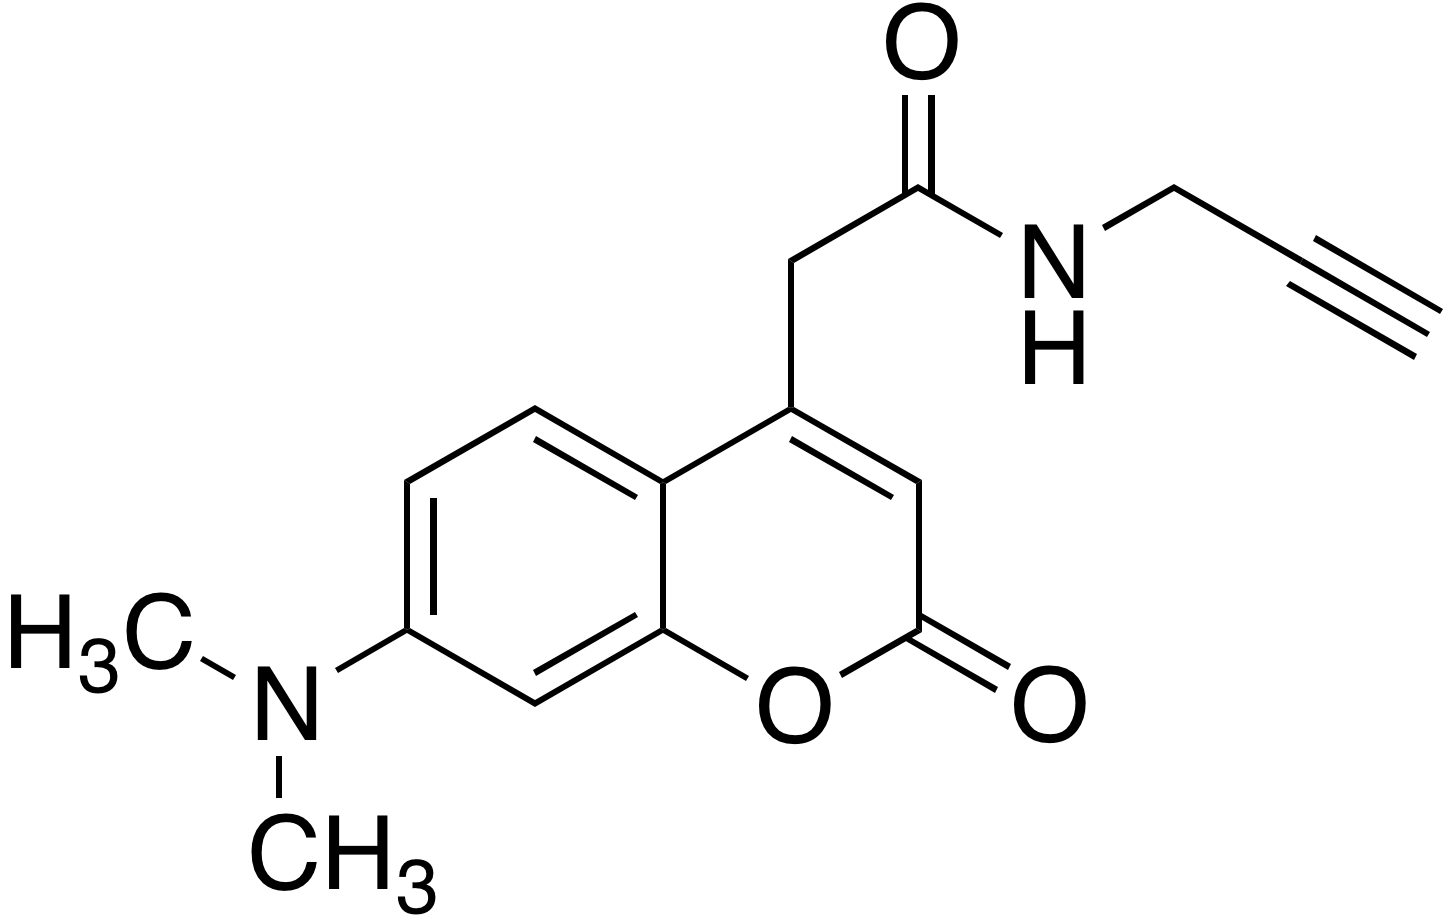 7-Dimethylaminocoumarin-4-acetic acid propargylamide